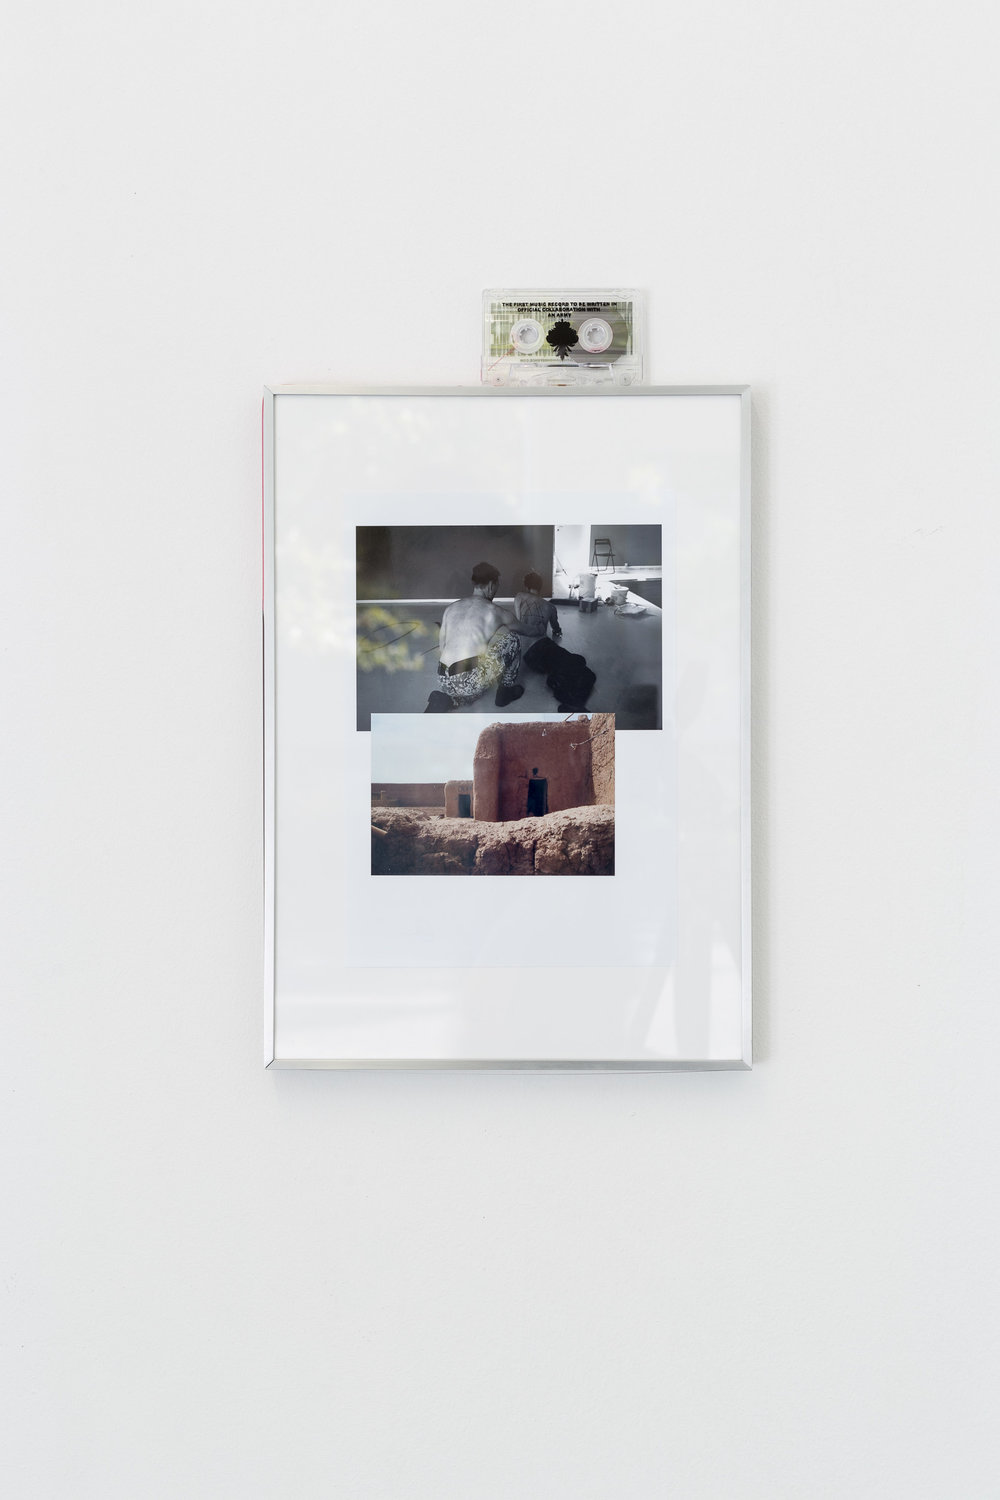 Peter Voss-Knude,  A Soldier Writing on my Back , 2017, digital print collage, framed, 21 x 29.7 cm; Peter Voss-Knude,  Peter & the Danish Defence , 2016, cassette tape, 00:39:00  Photo: Kilian Bannwart